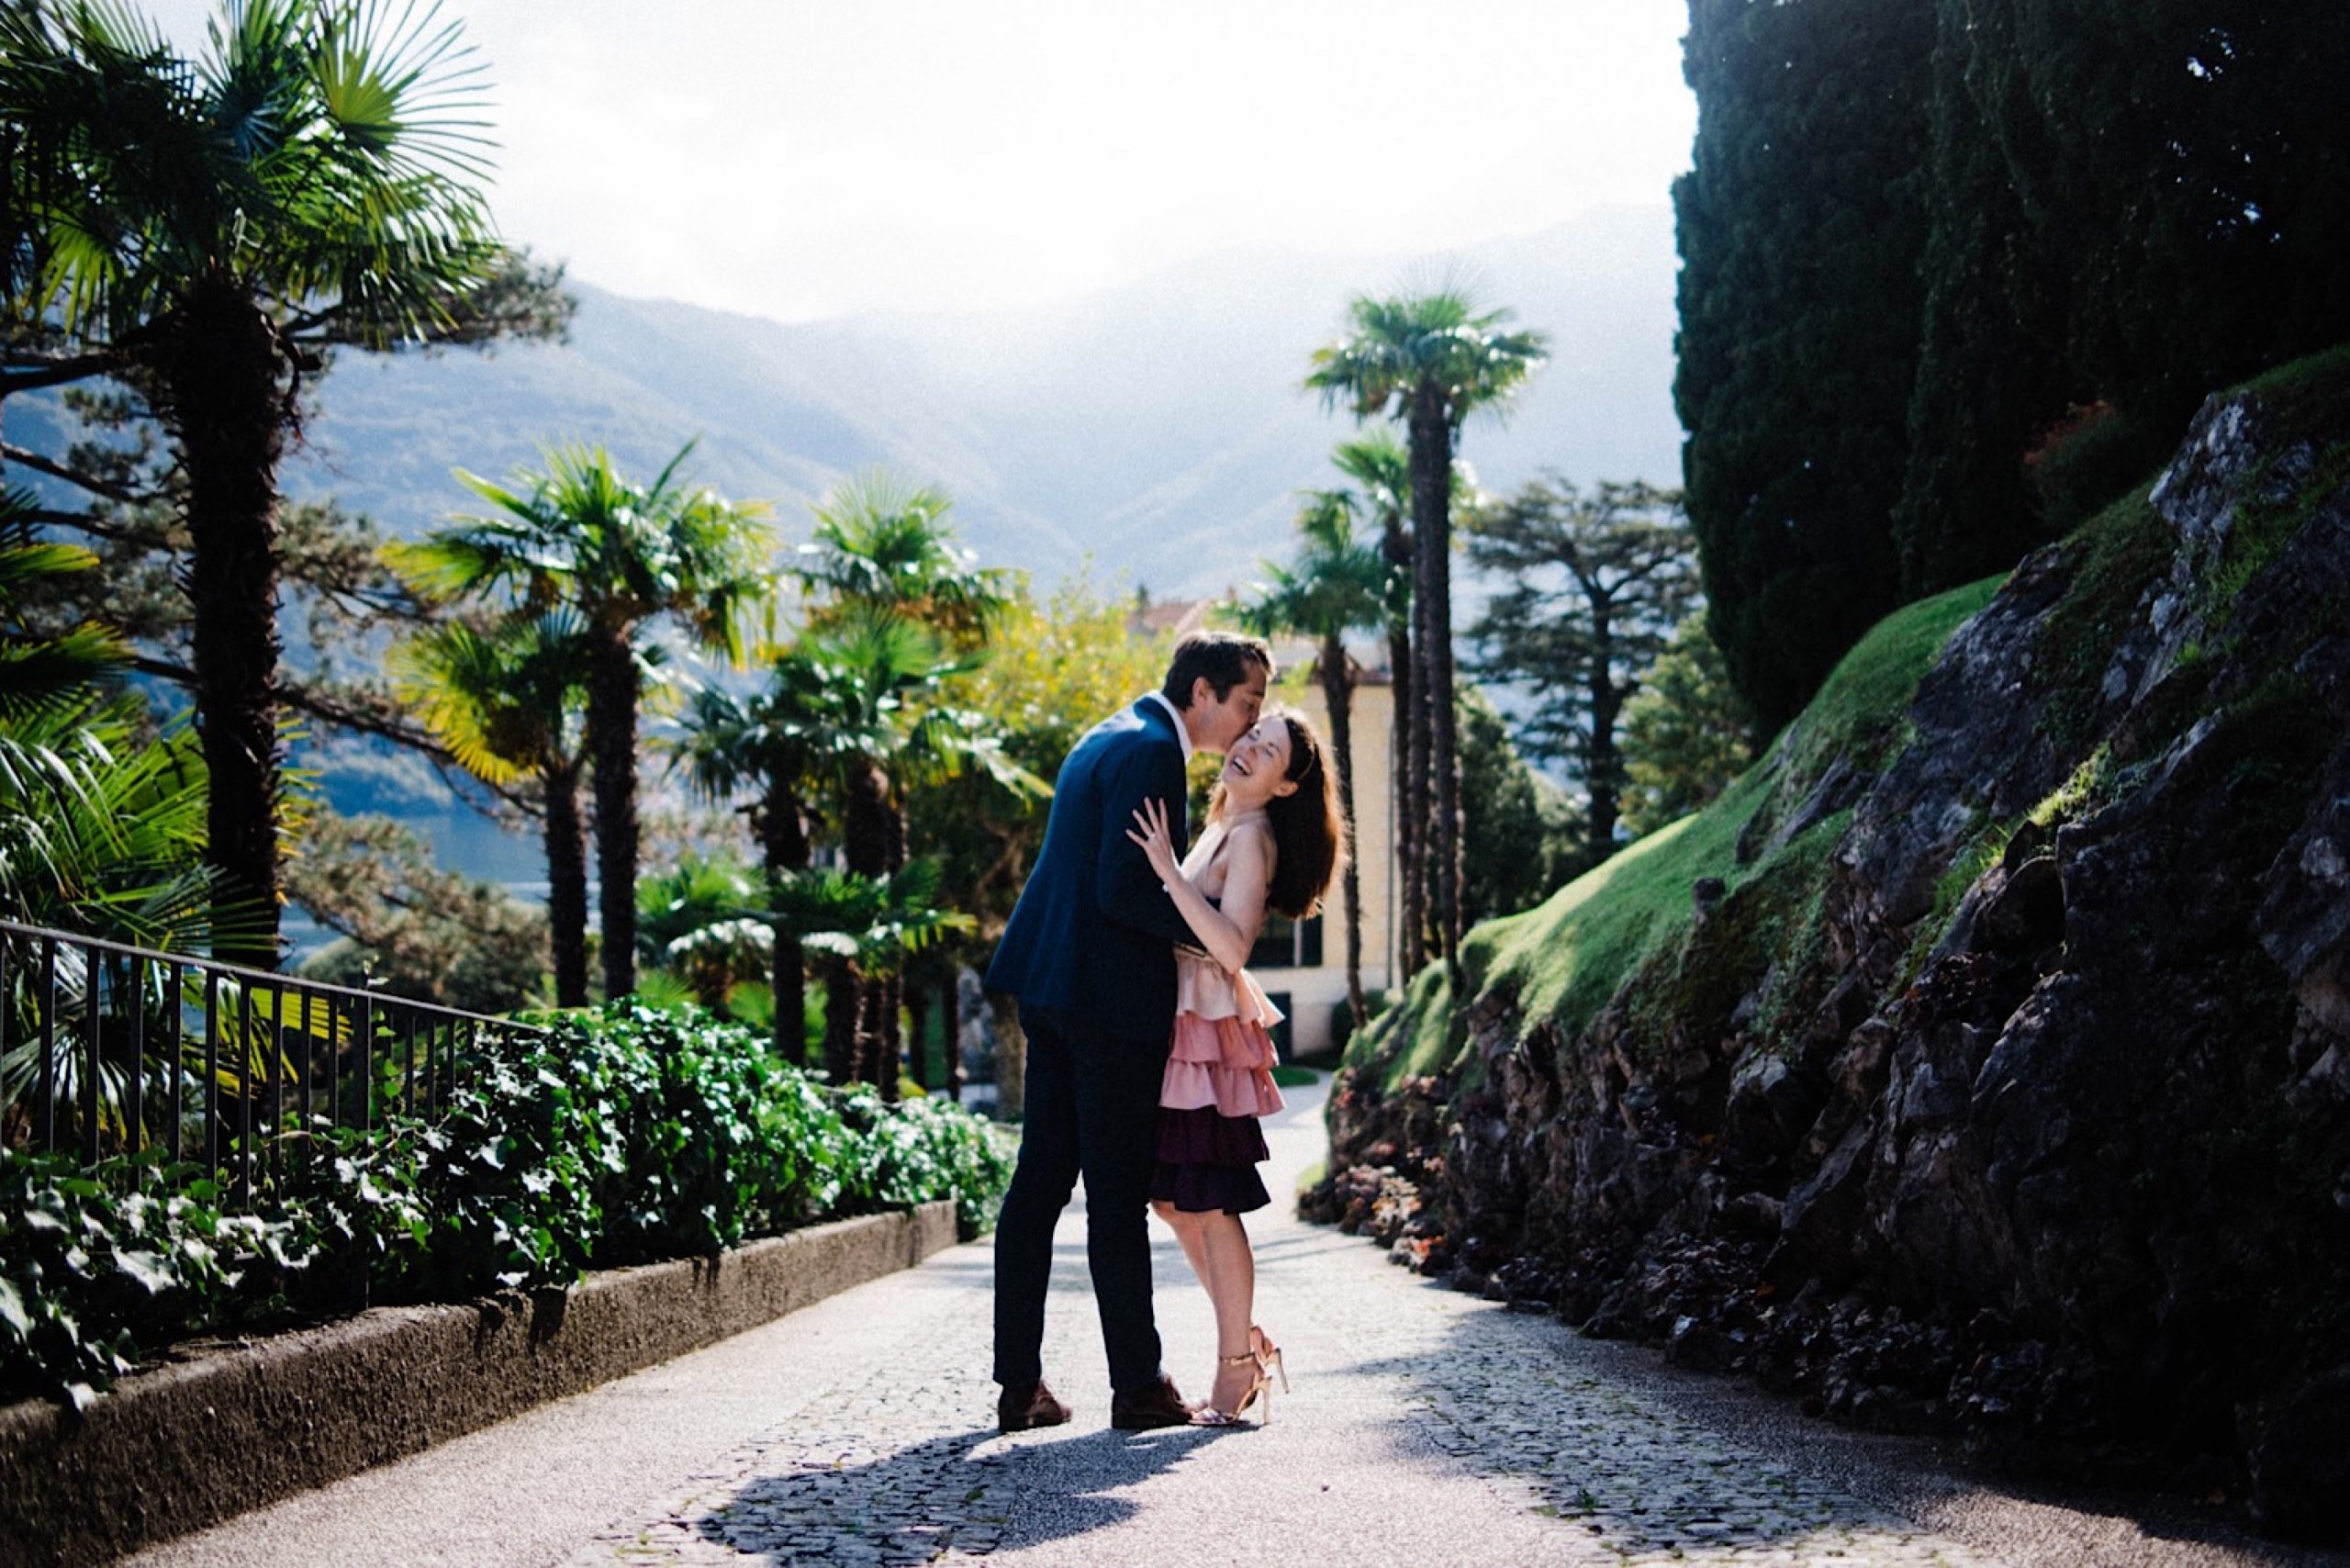 A wide photo of a couple standing in the middle of a laneway at Villa Balbianello on Lake Como, surrounded by palm trees.